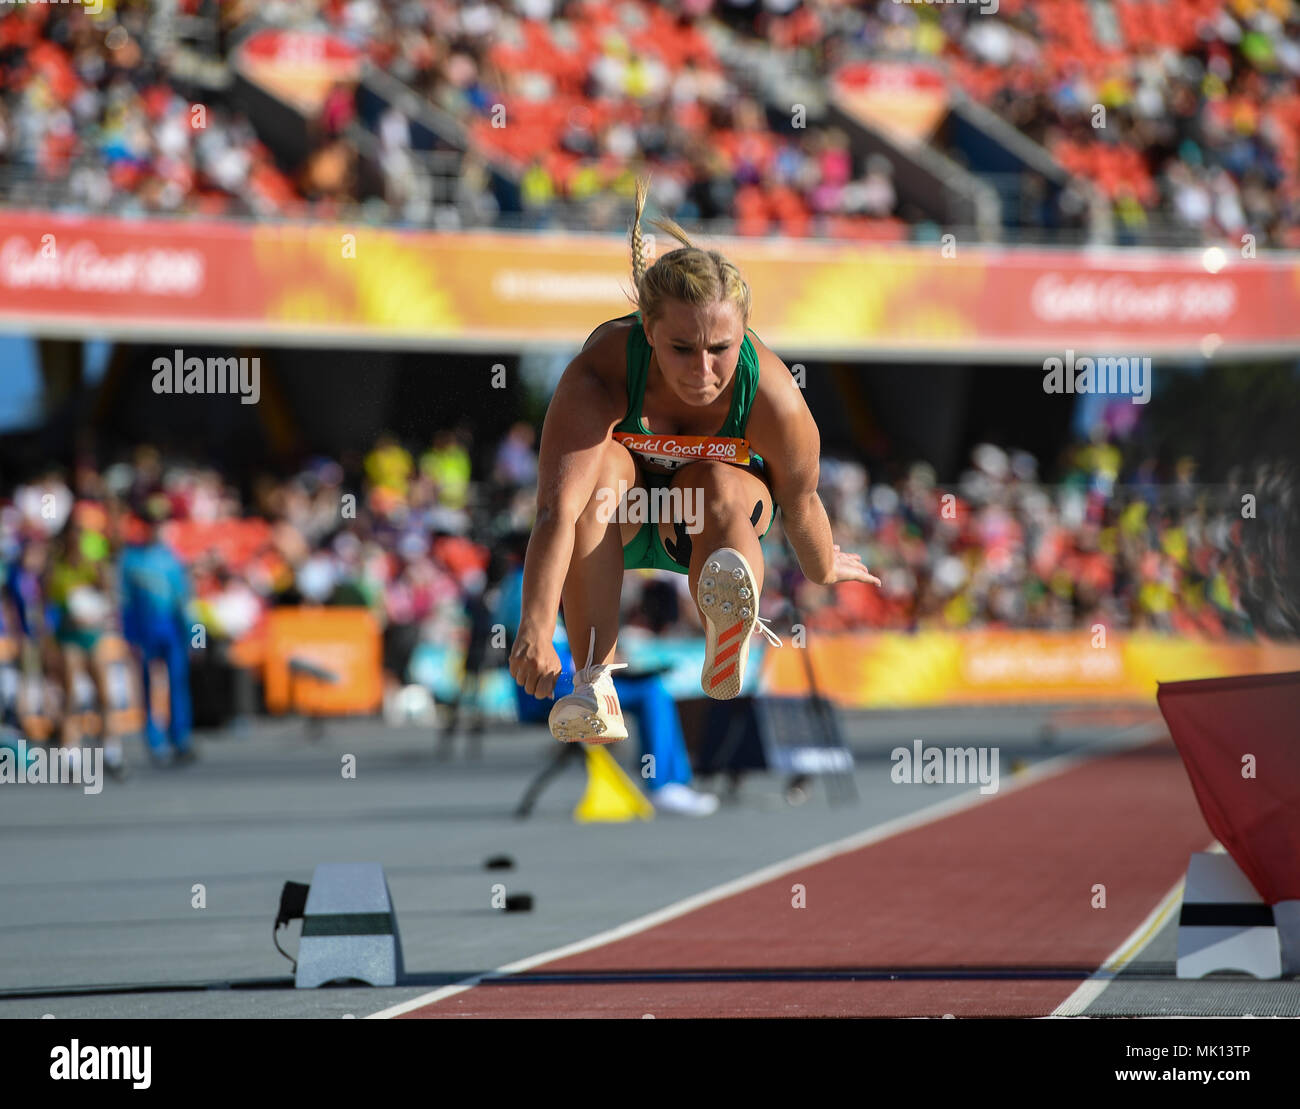 GOLD COAST, AUSTRALIA - APRIL 8: Juanelie Meijer of South Africa competing in the Women's F38 Long Jump at the Gold Coast 2018 Commonwealth Games at C - Stock Image